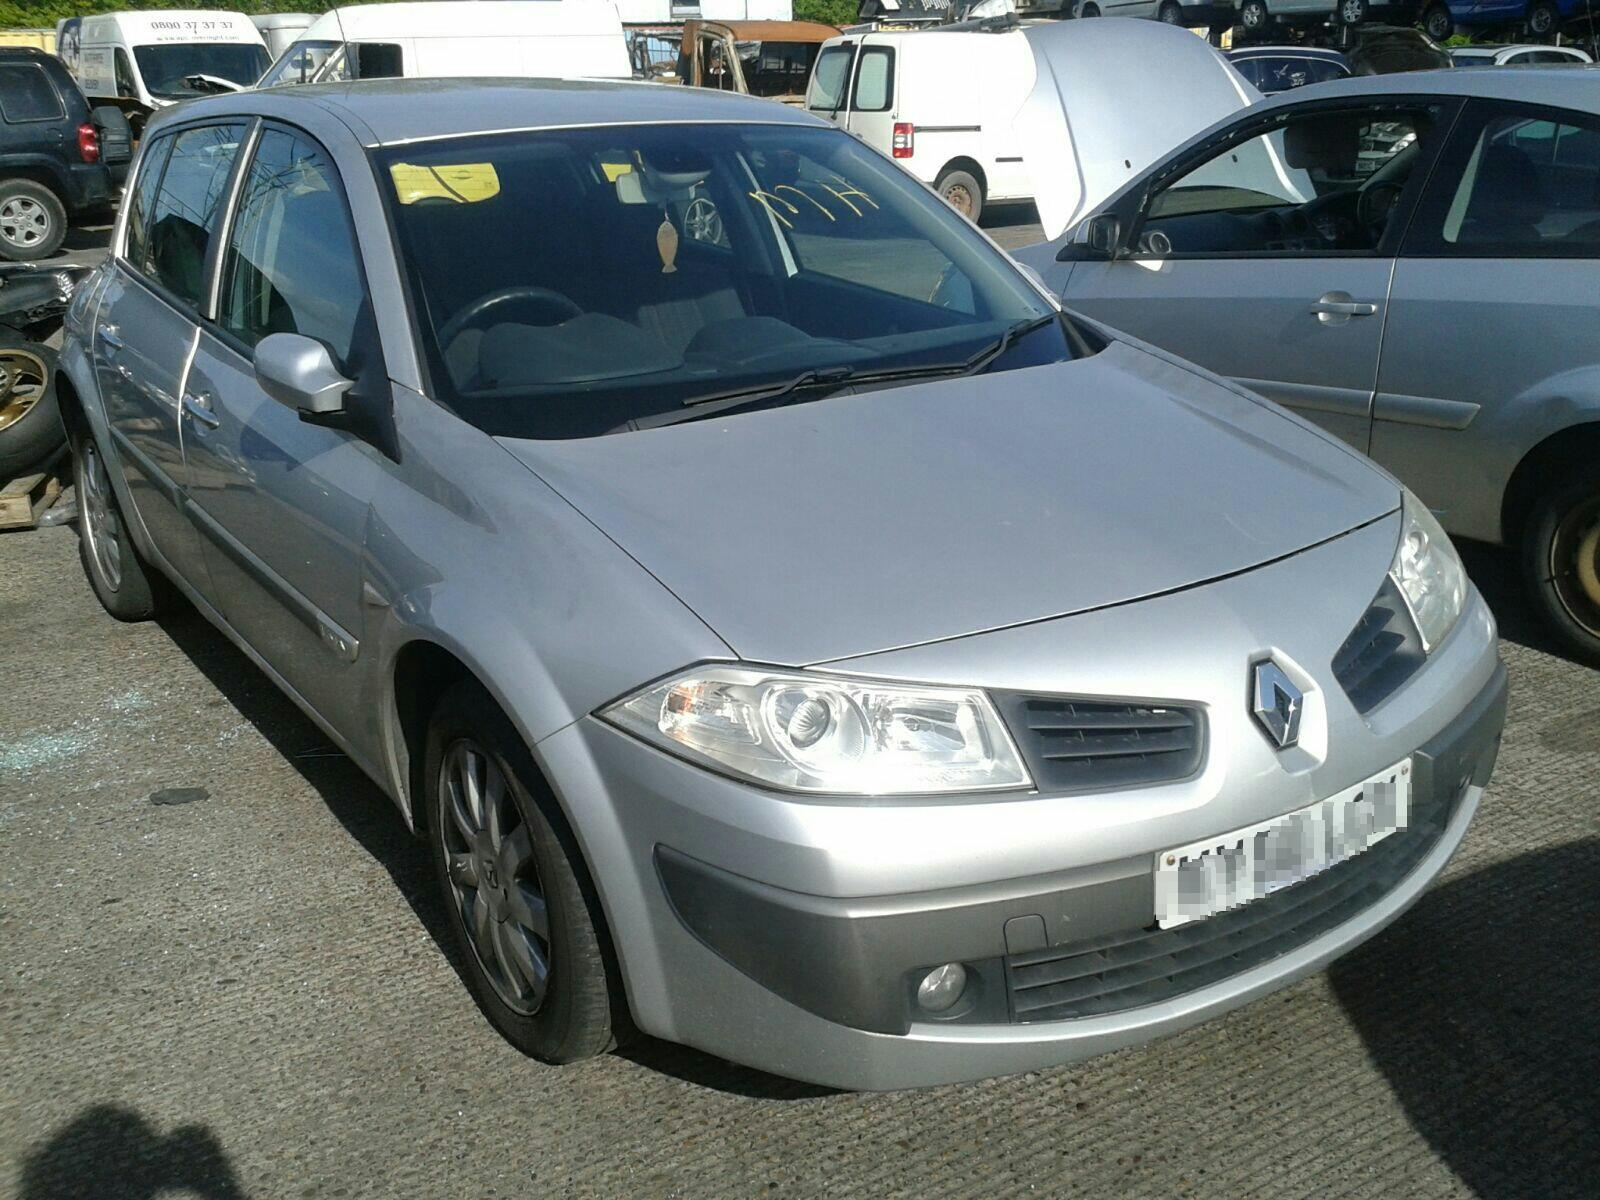 Renault Megane 2002 To 2005 5 Door Hatchback